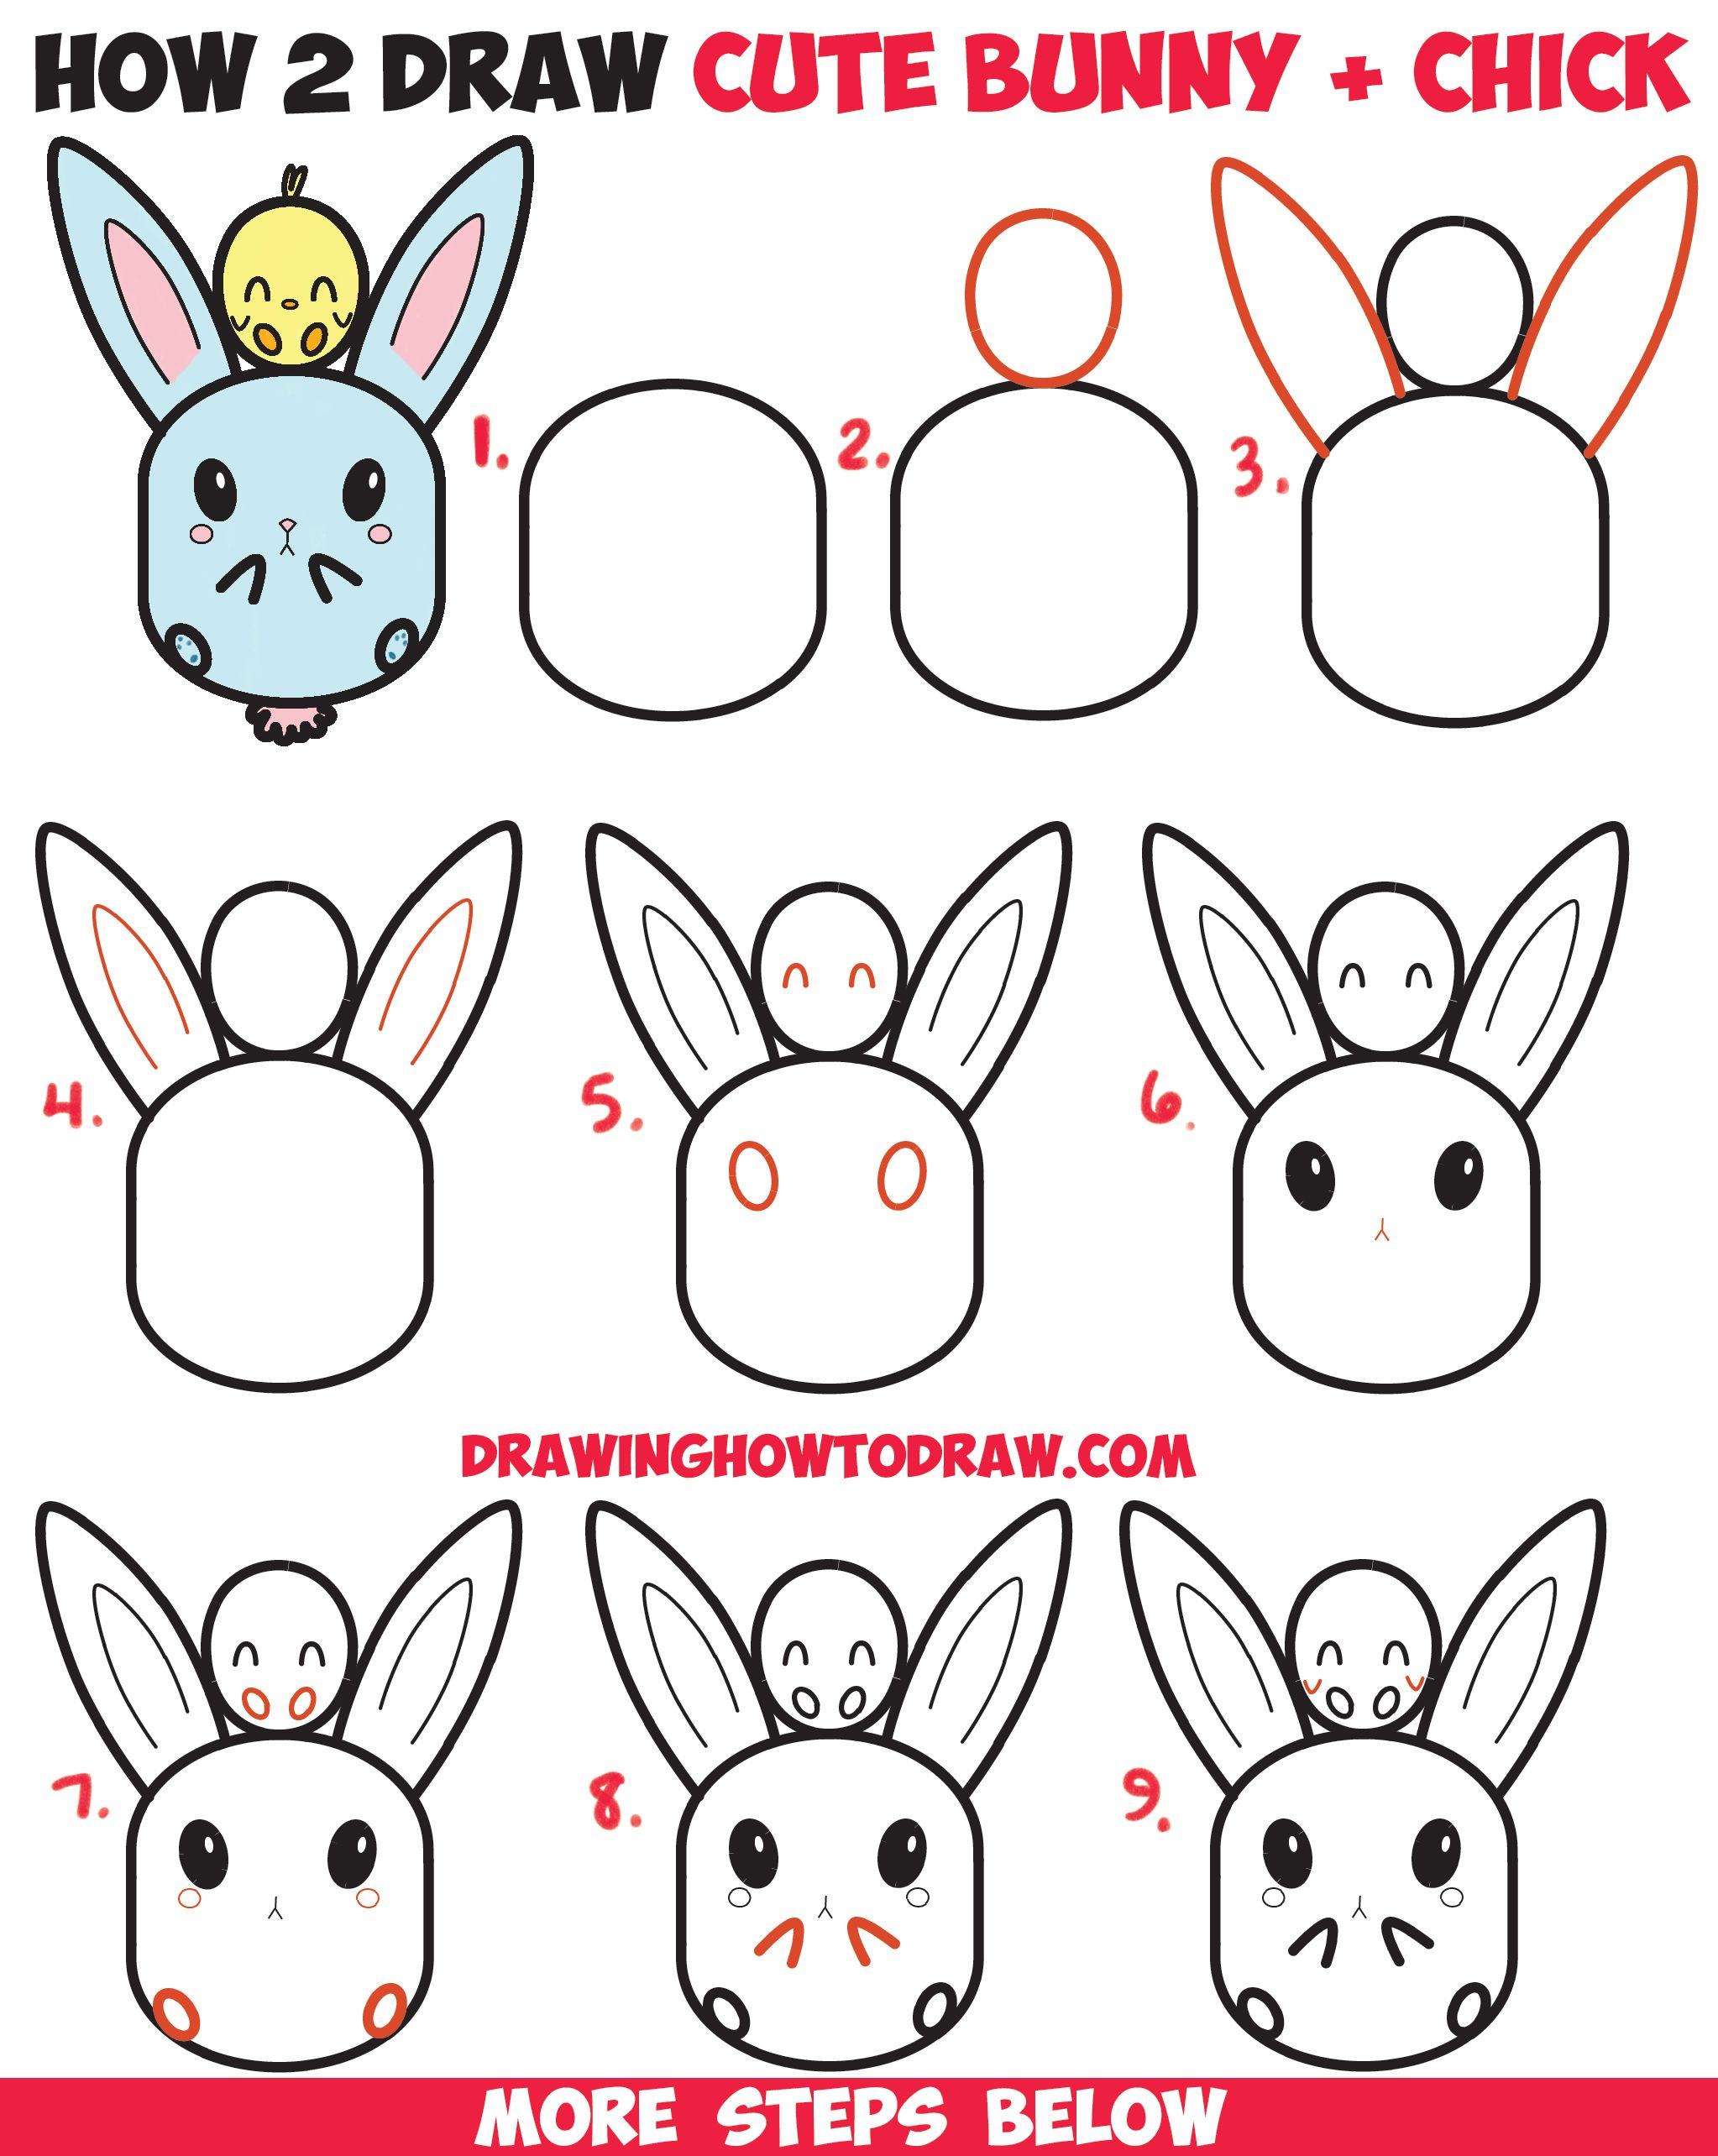 How to draw cute kawaii chibi bunny rabbit and baby chick easy step by step drawing tutorial for kids for easter and spring how to draw step by step